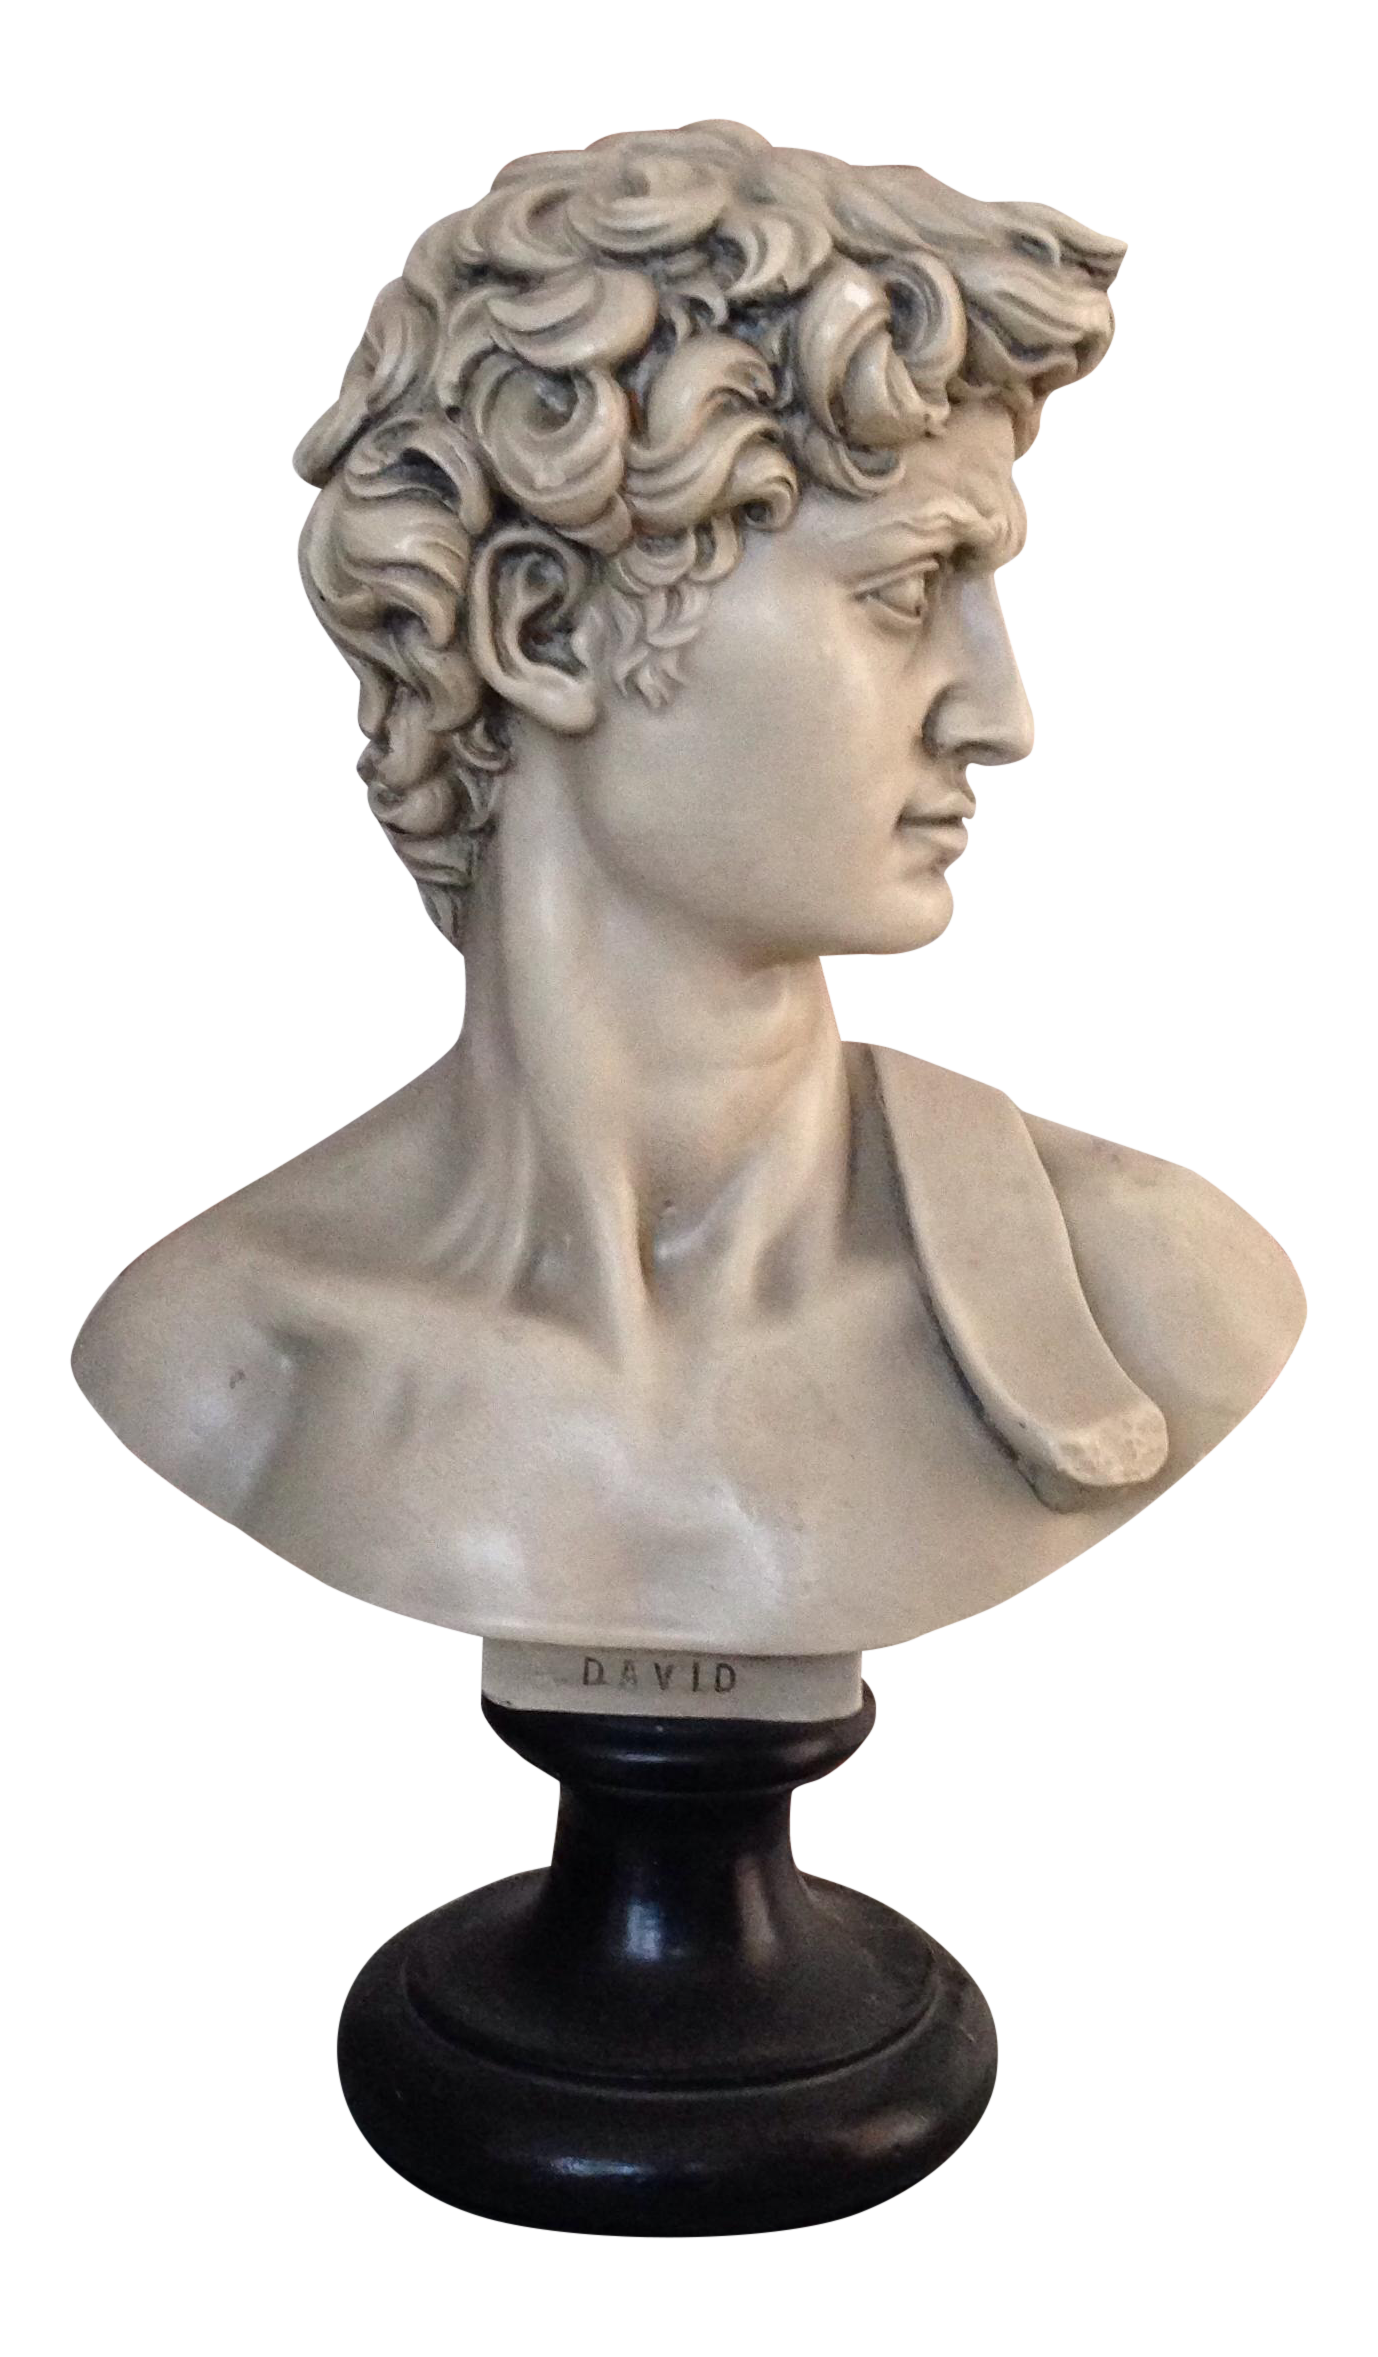 David statue png. Plaster bust of chairish